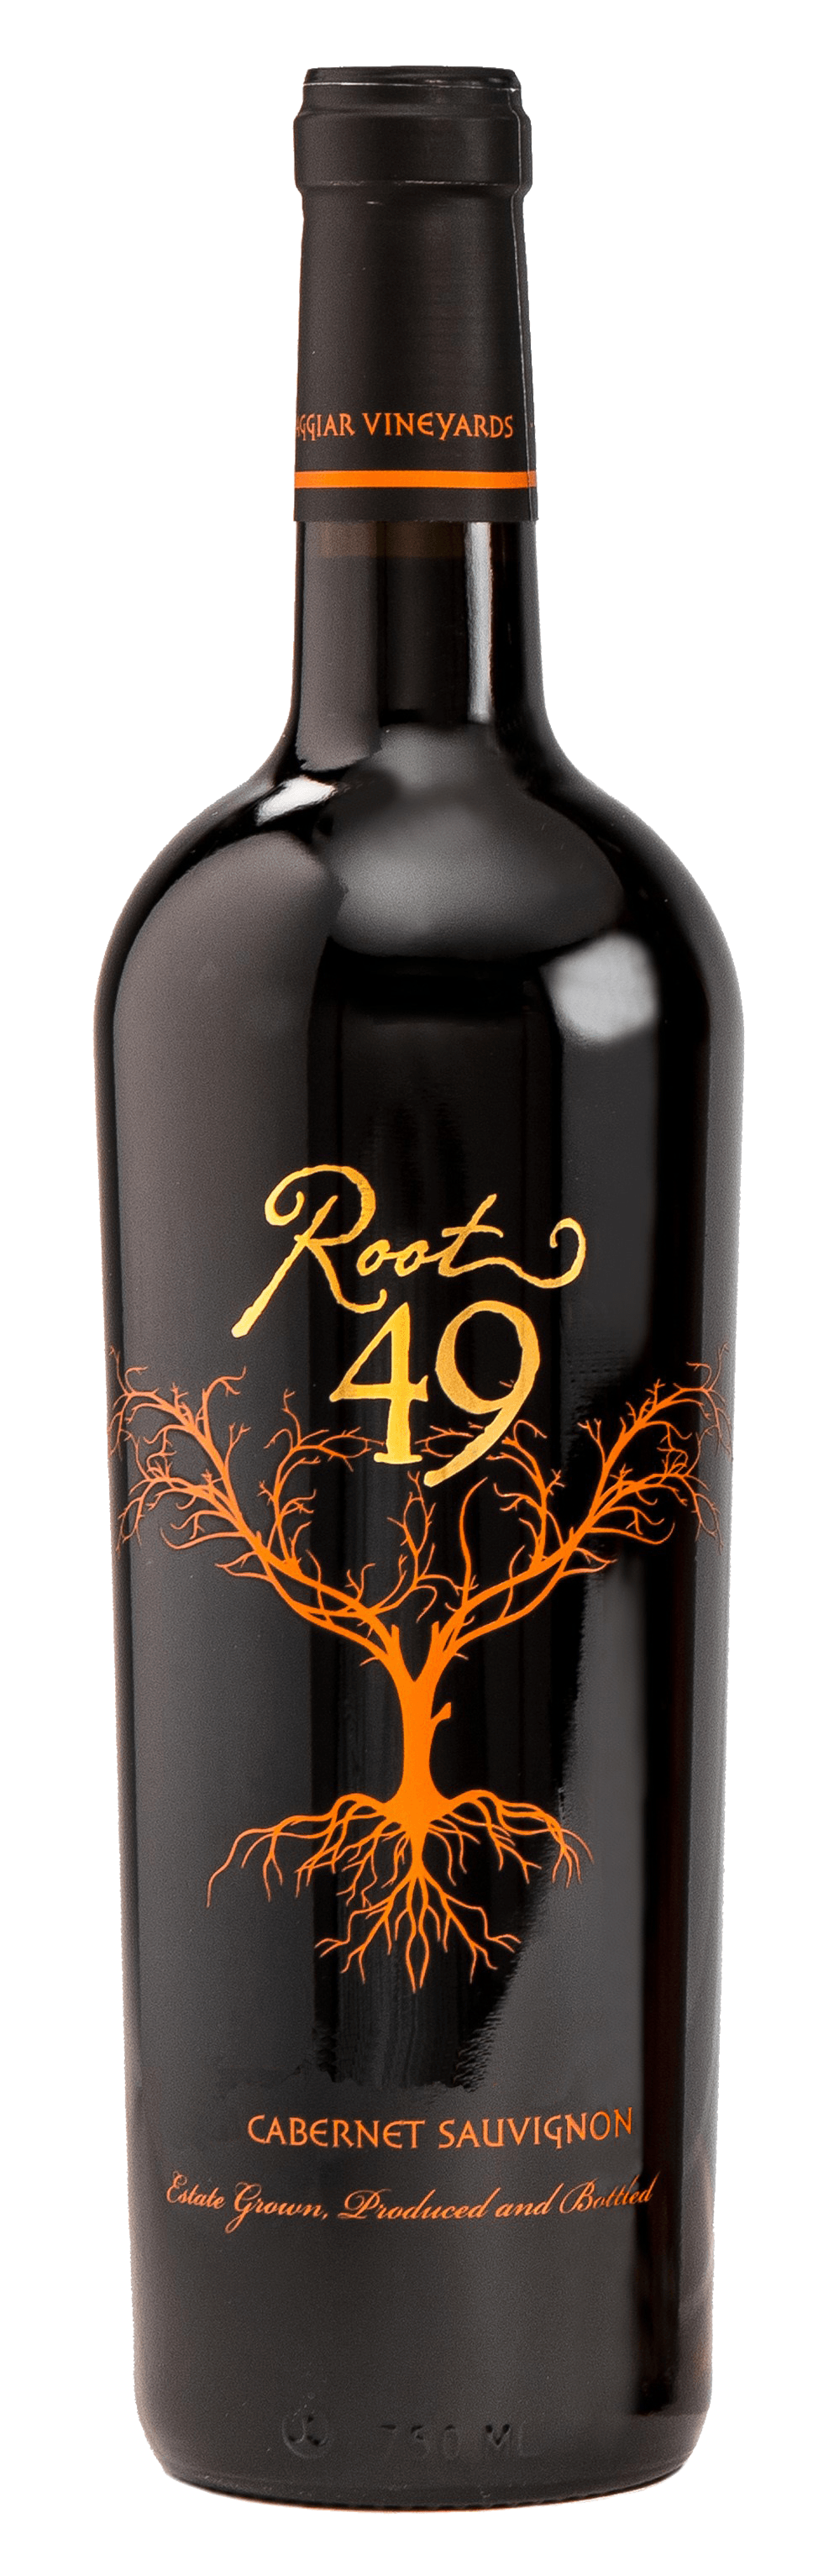 Root 49 Cabernet Sauvignon wine bottle